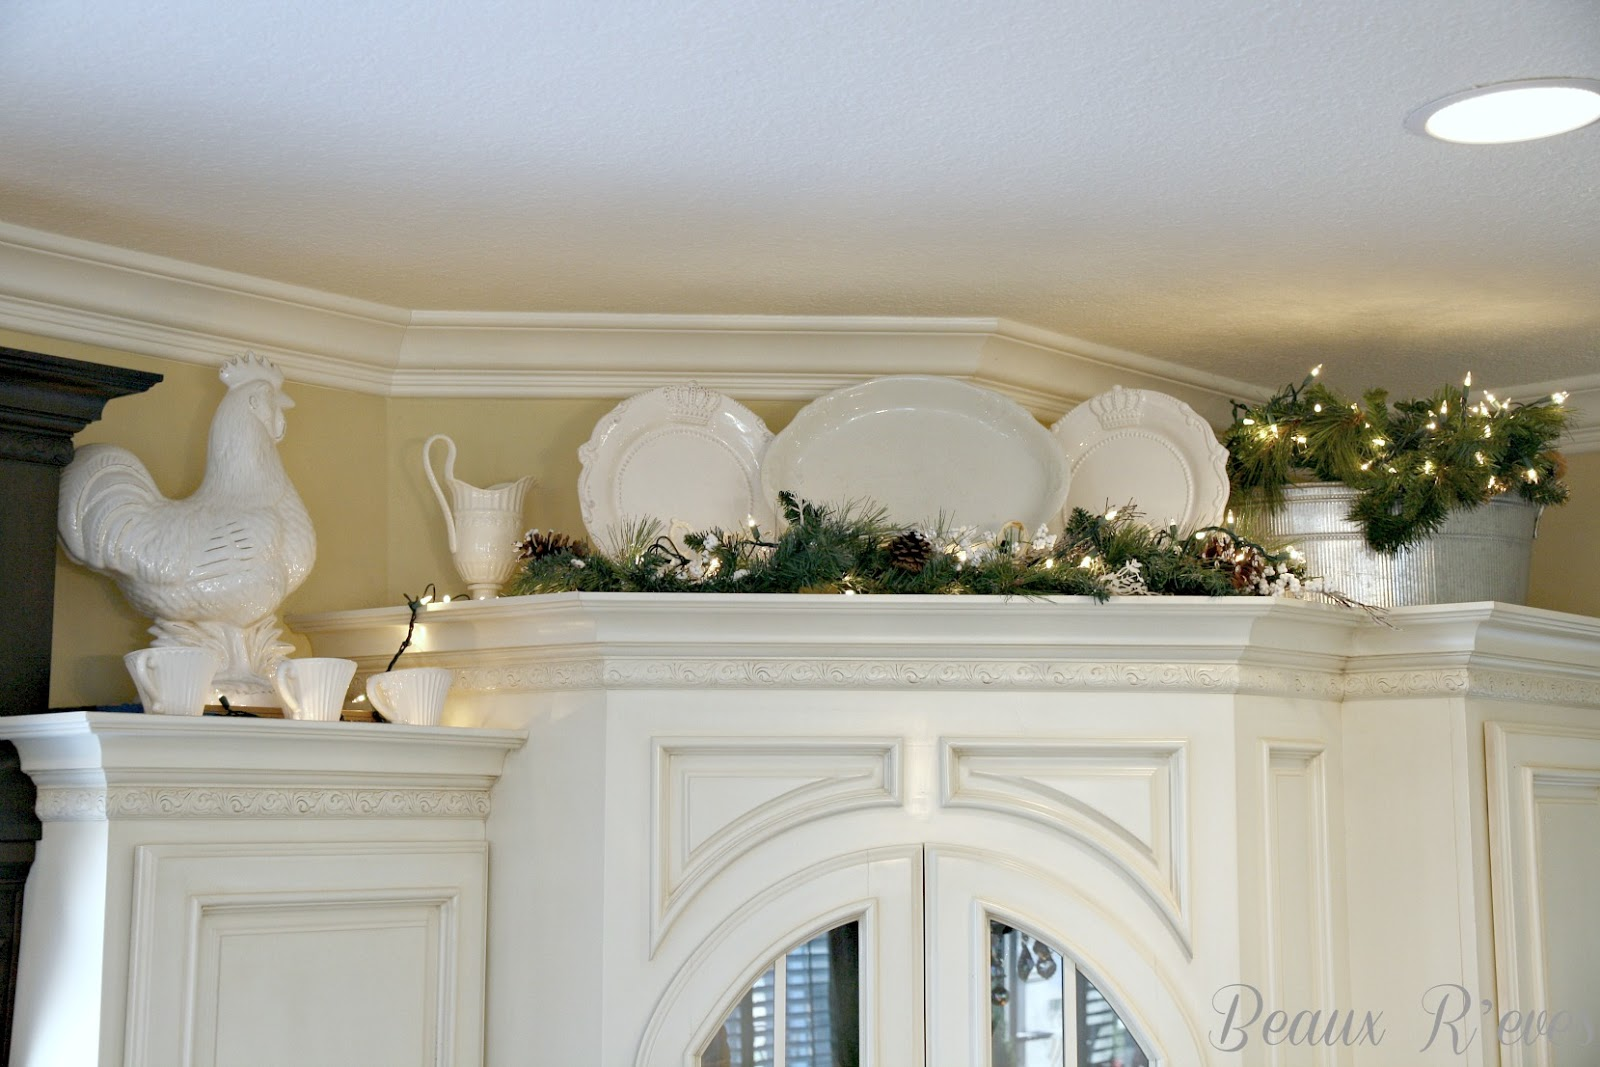 Beaux R'eves: It Feels Like Winter~Decorating After the Holidays